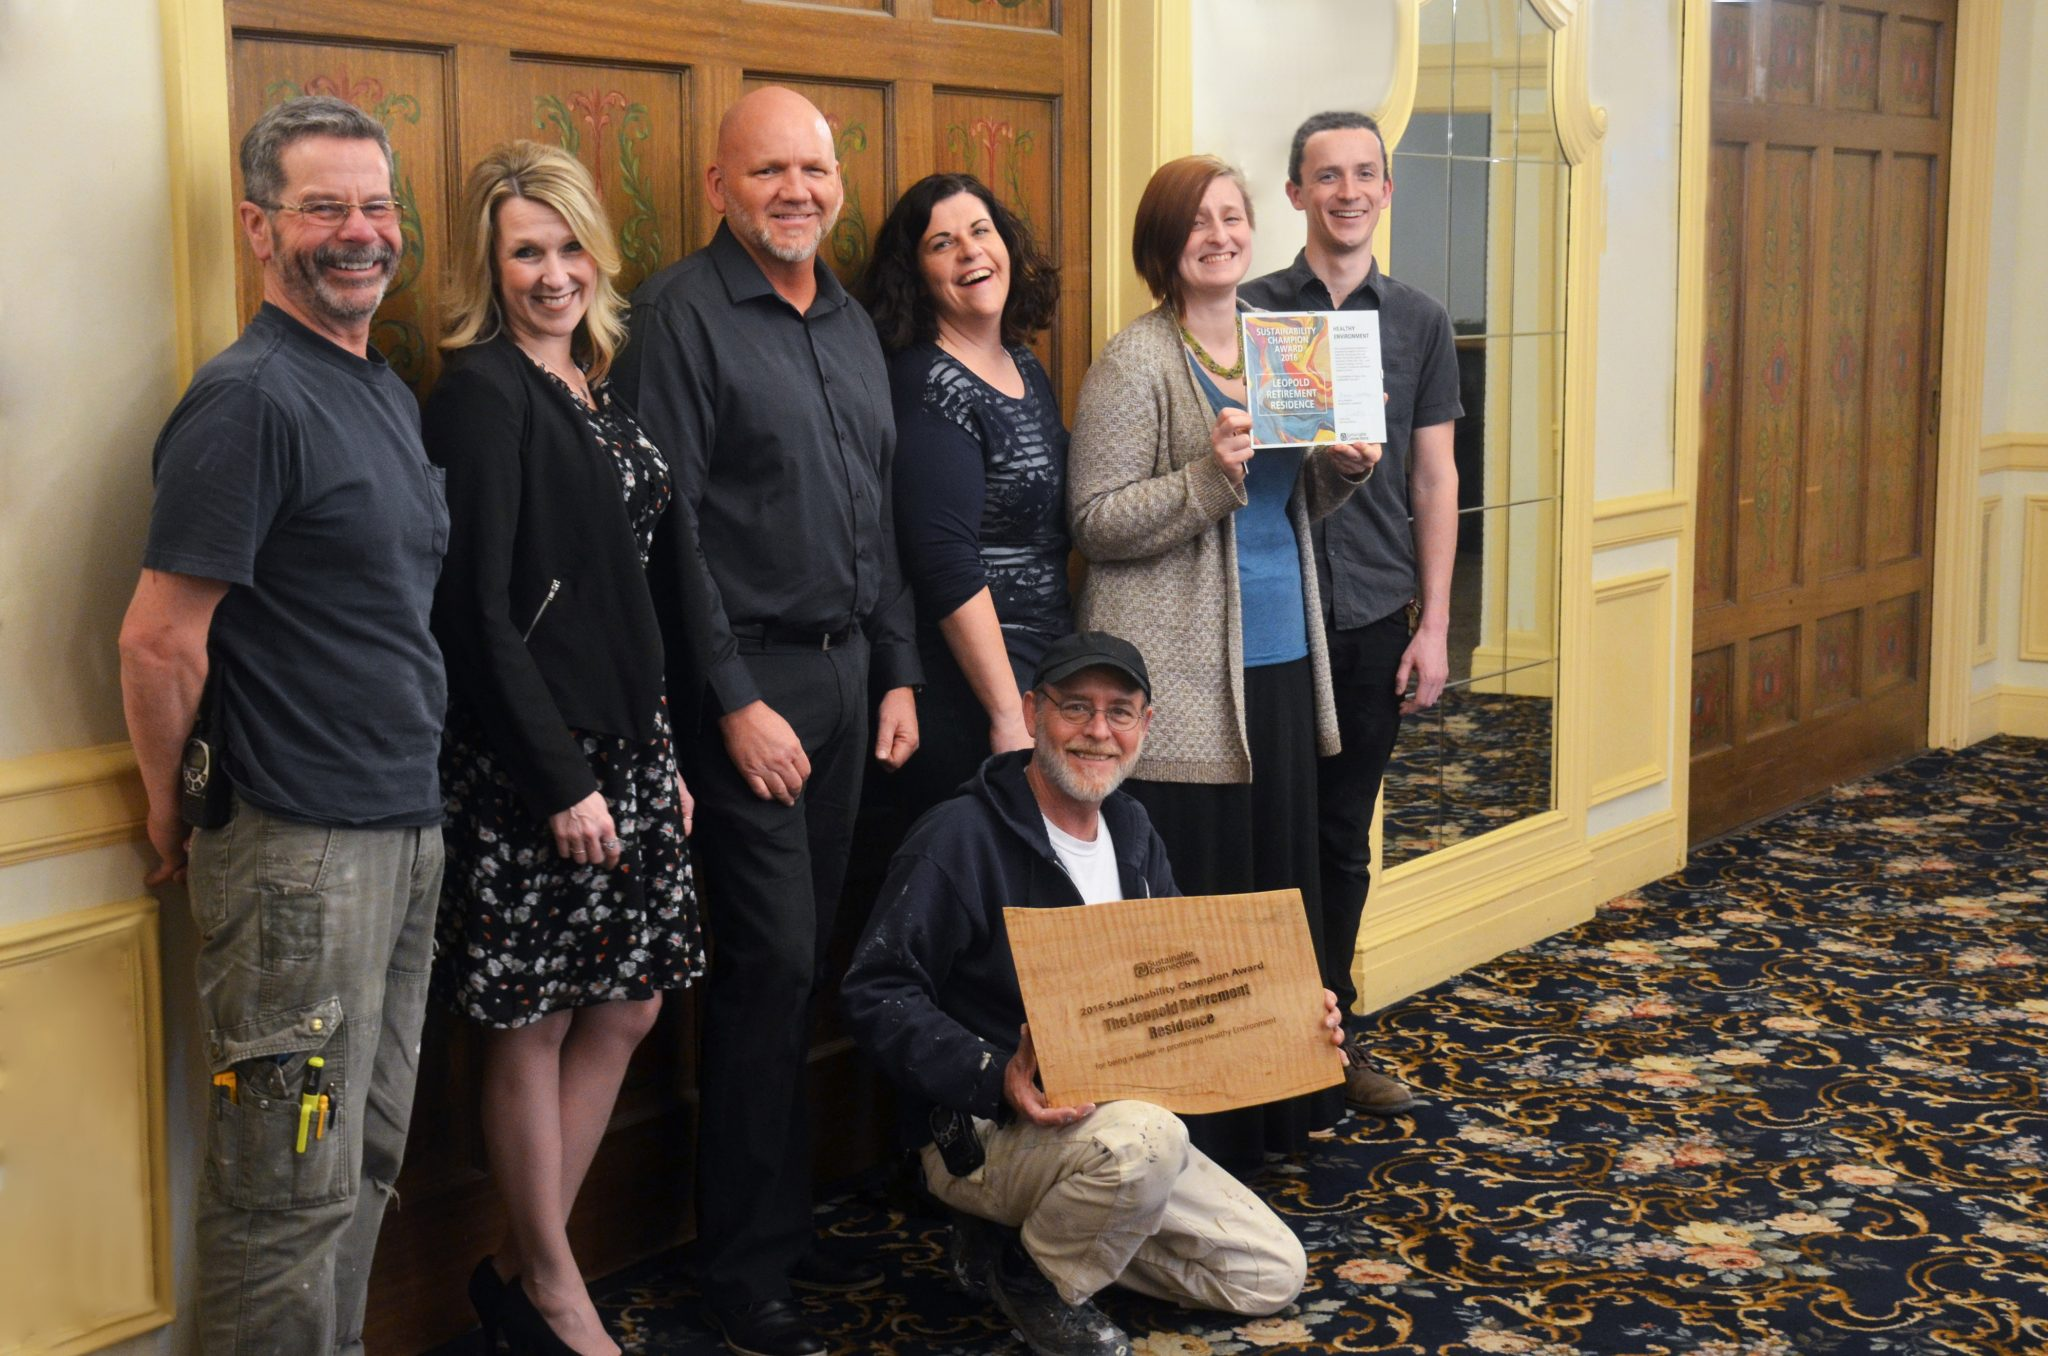 Leopold Retirement Residence Sustainability Champion Award